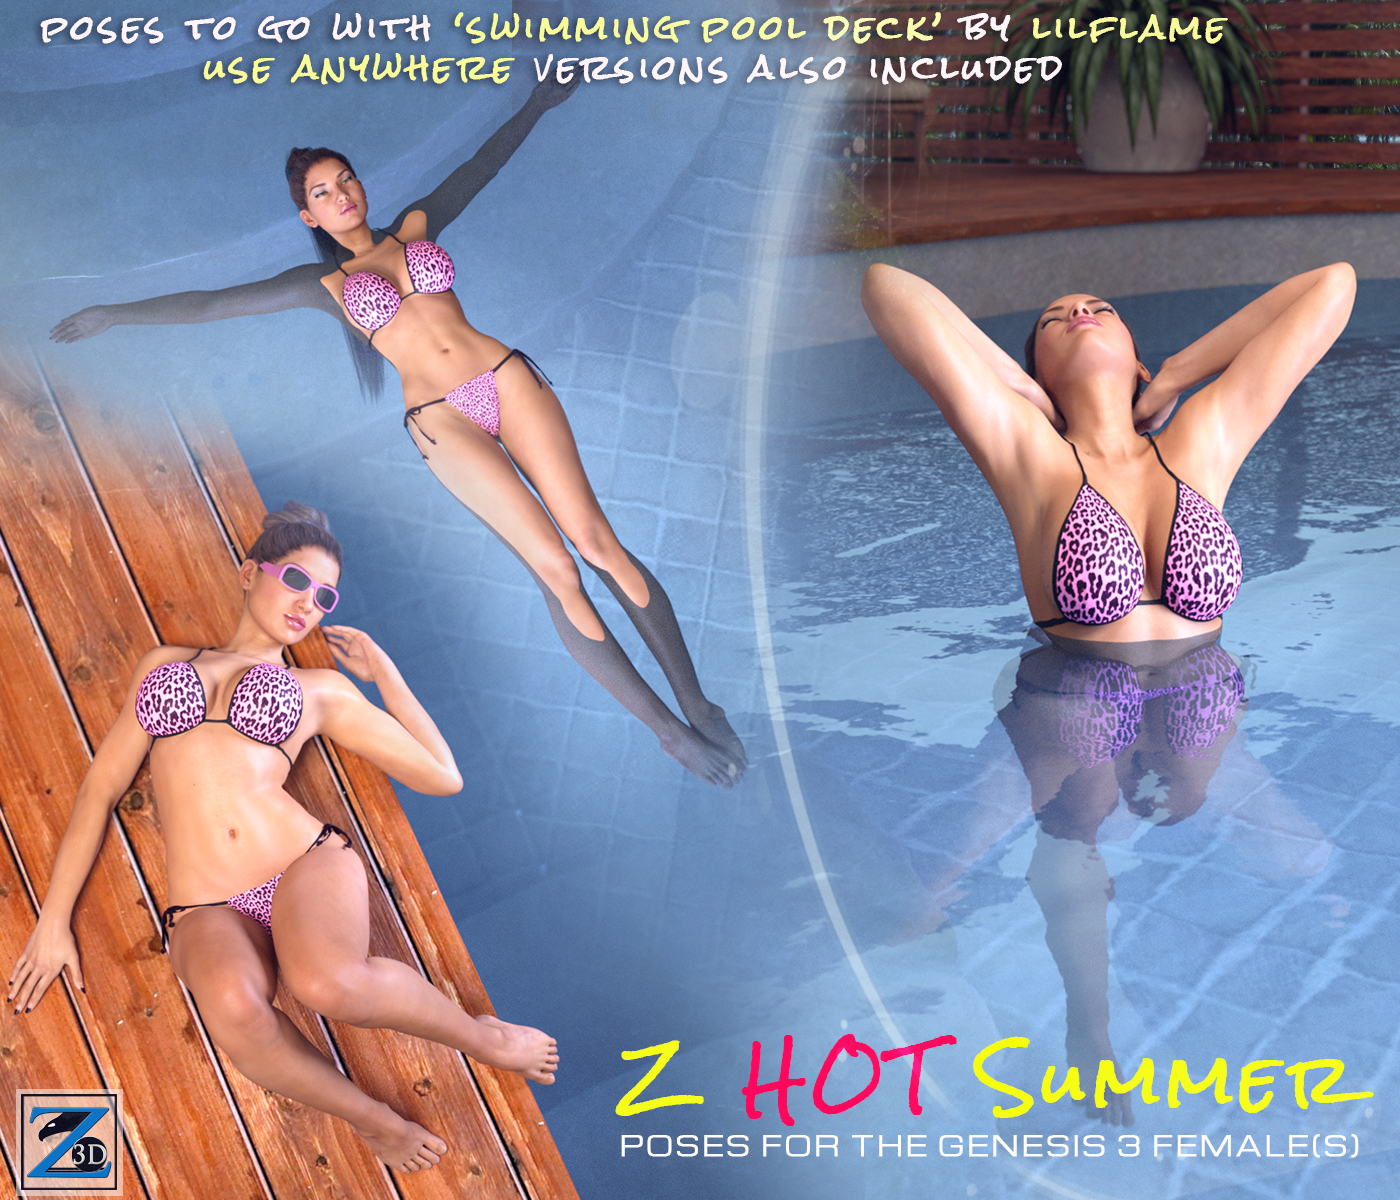 Z Hot Summer - Poses for the Genesis 3 Female(s)